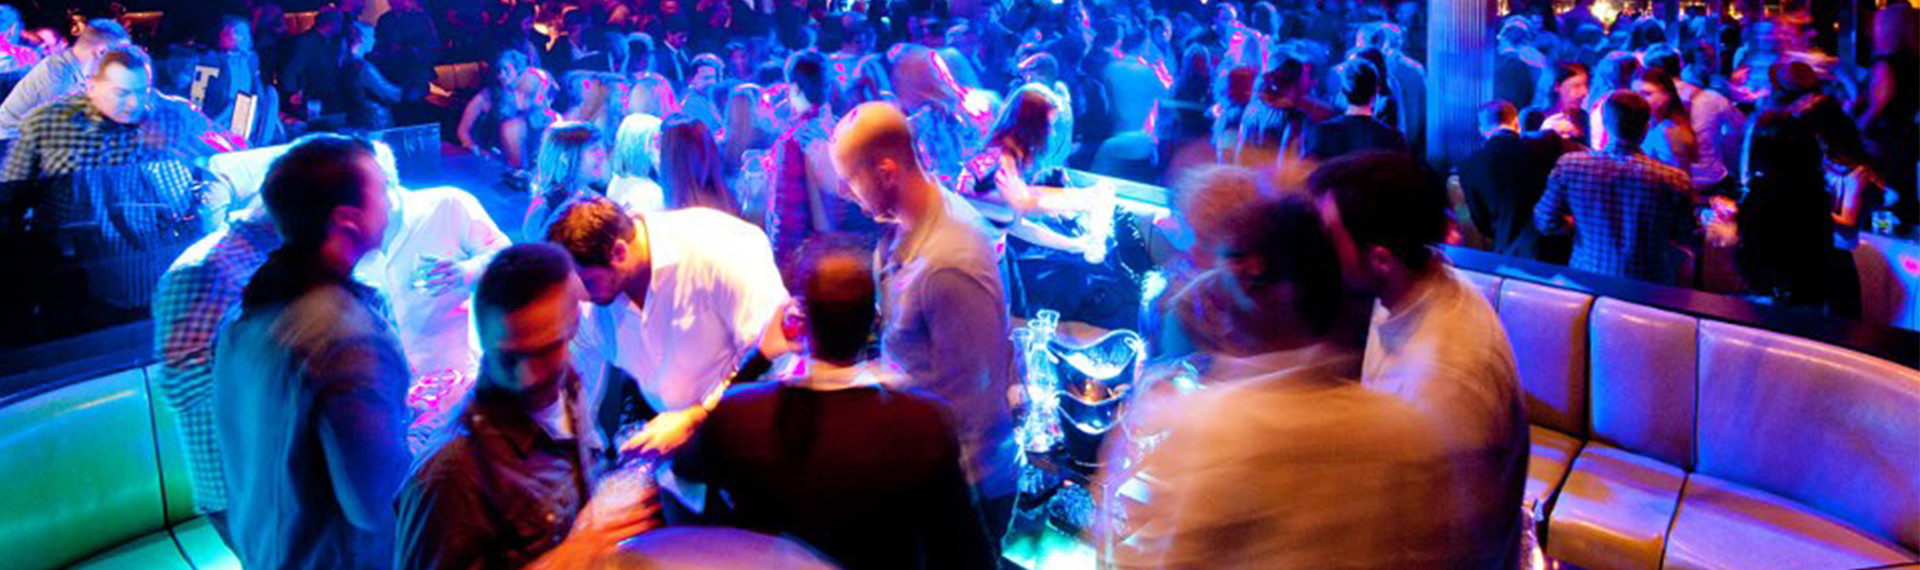 Club Night - Panama in Amsterdam for Stag Dos | Pissup